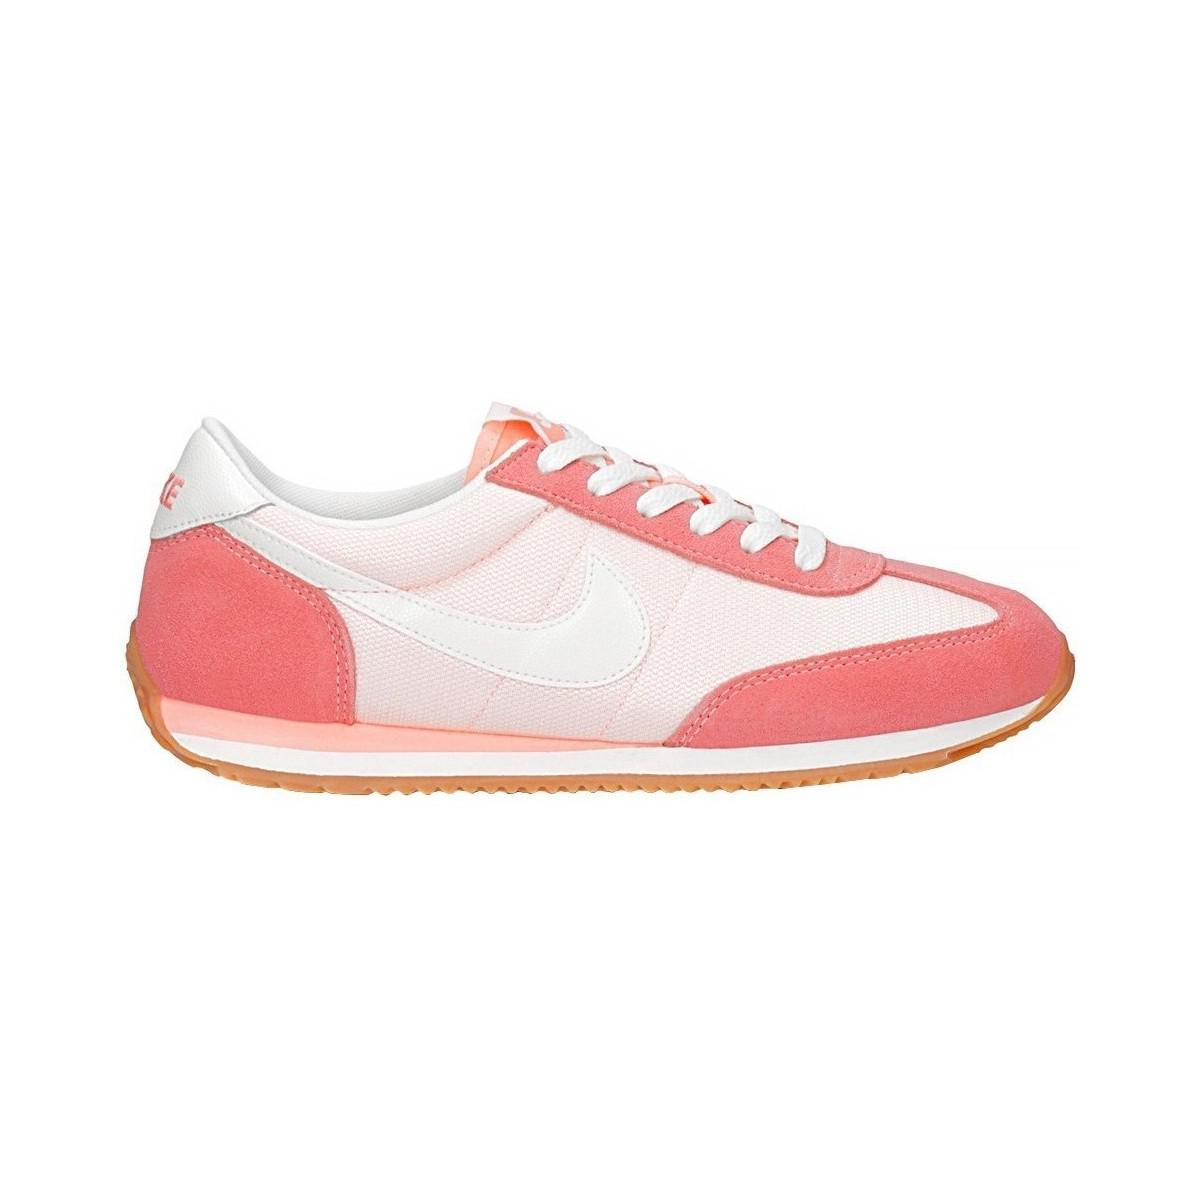 c4f2d61b66f5 Nike Oceania Textile Women s Shoes (trainers) In White in White - Lyst